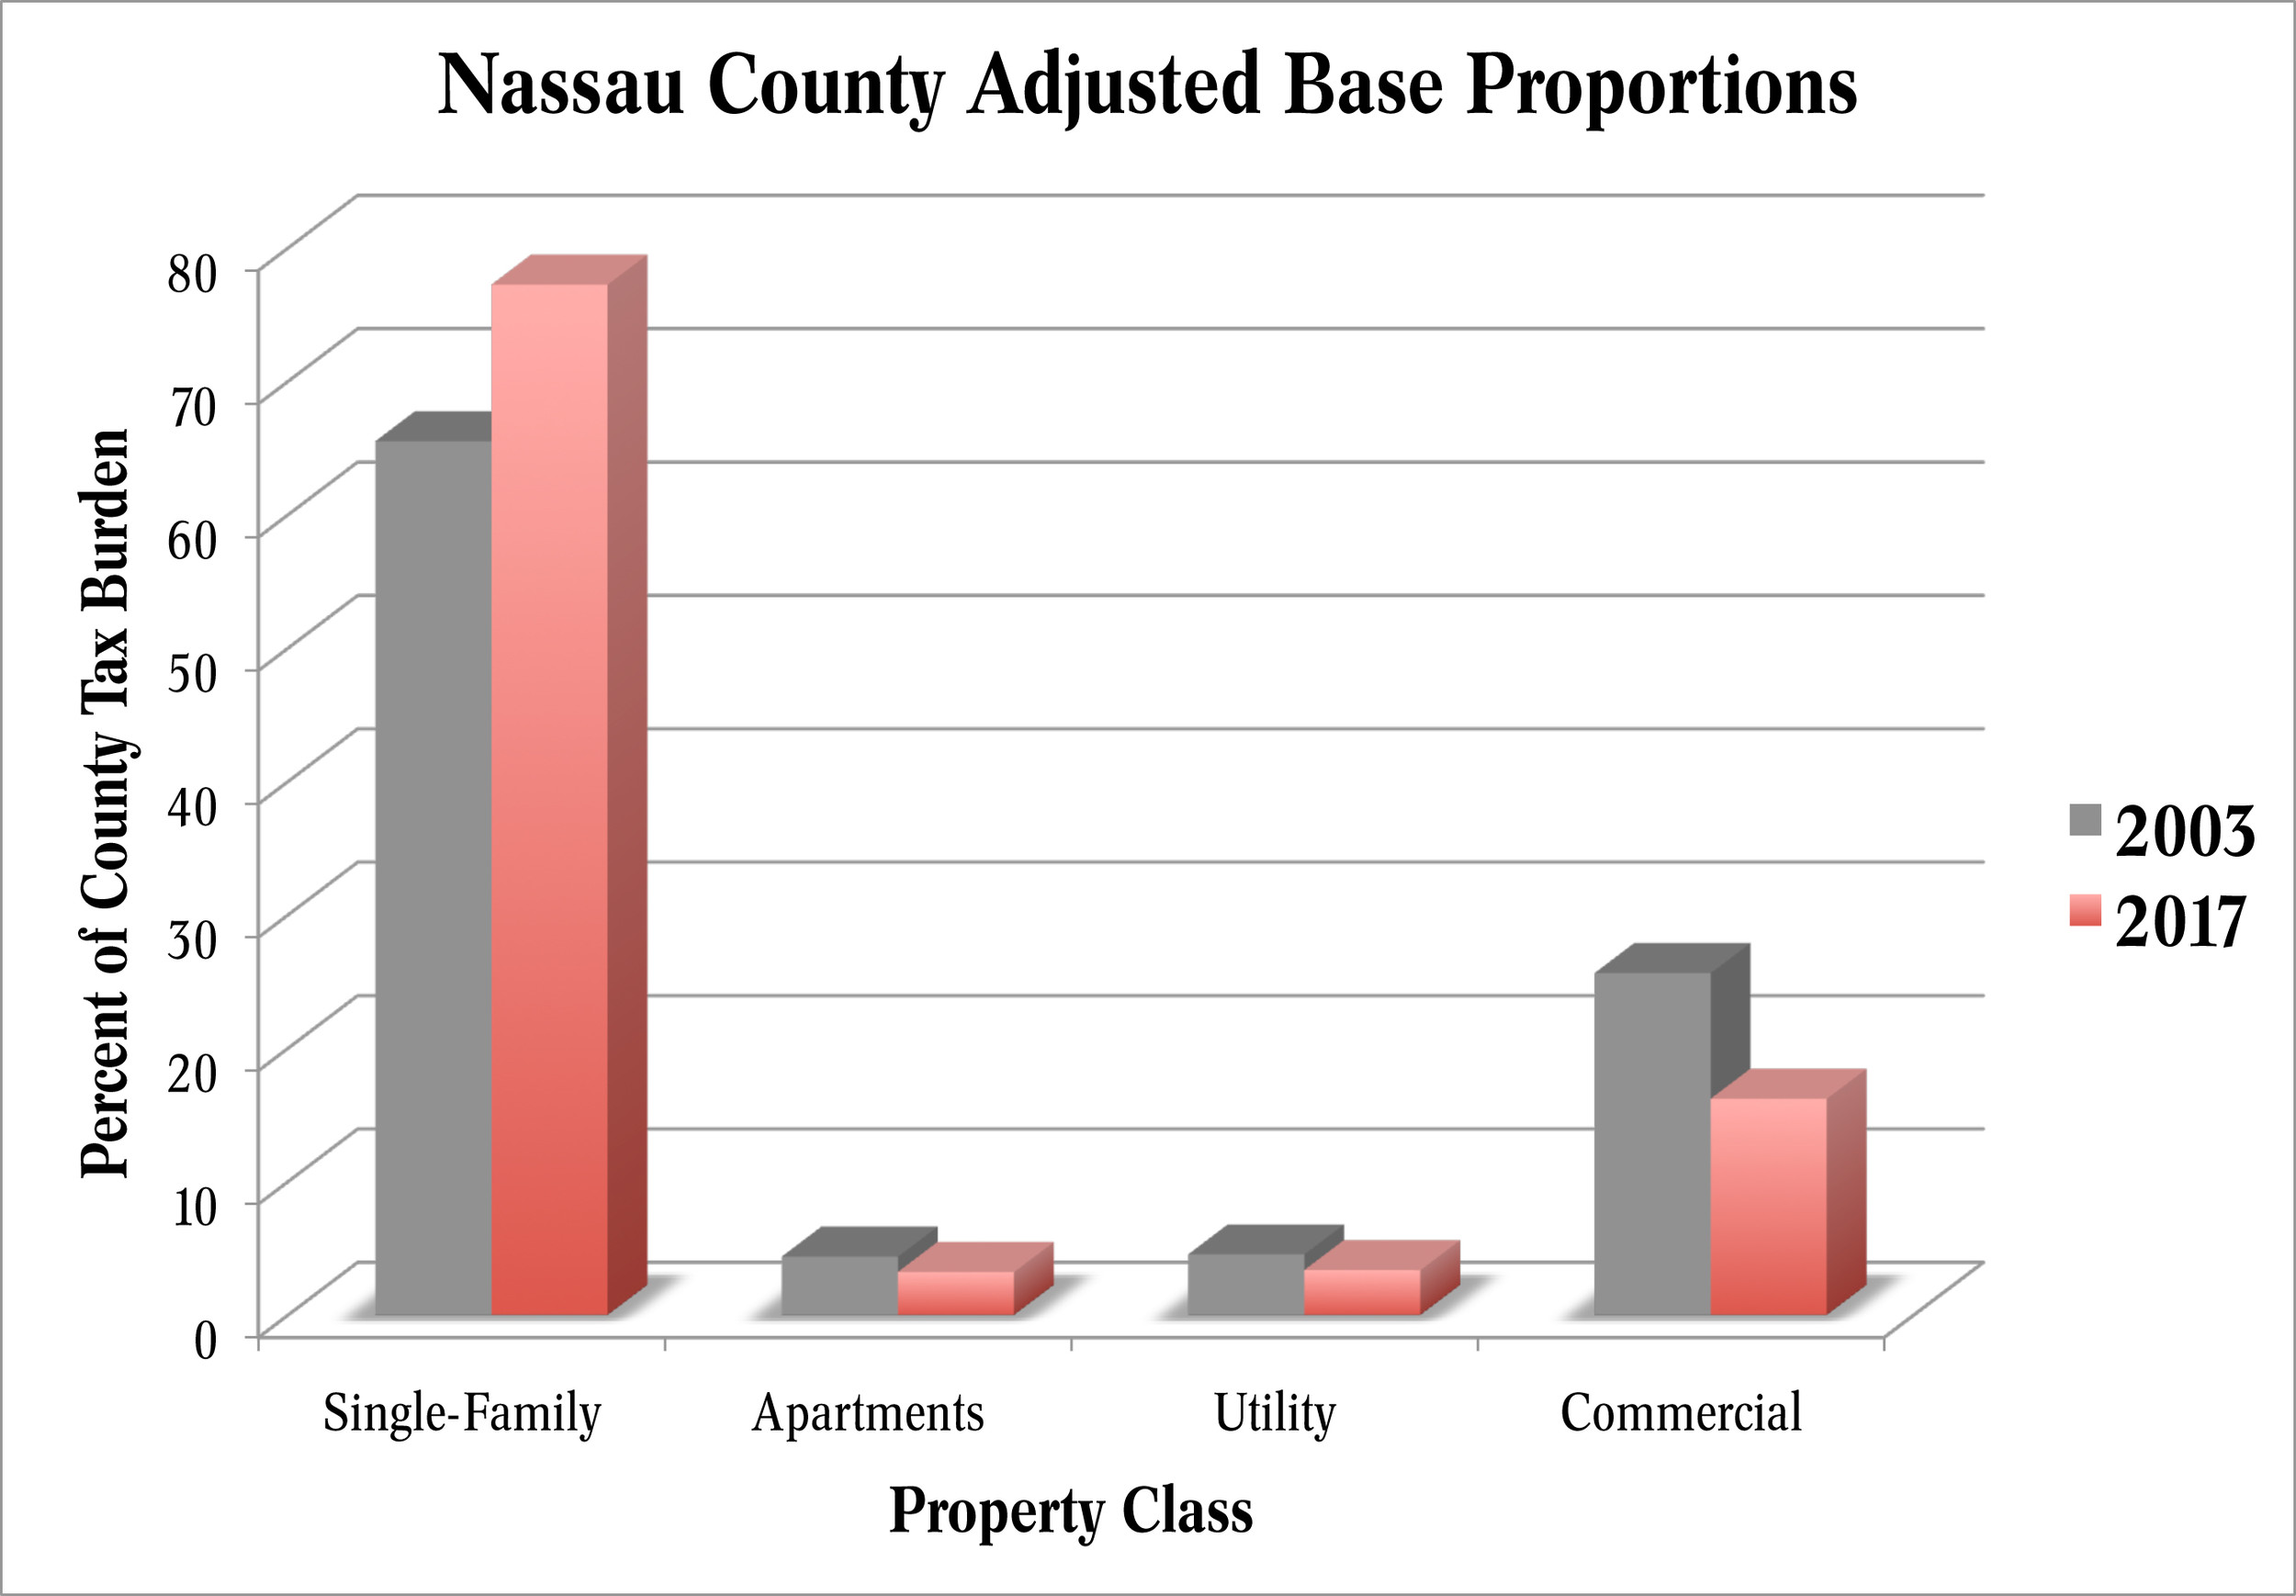 In Nassau County, there is a trend of single-family homeowners paying an increasing share of the overall tax burden.